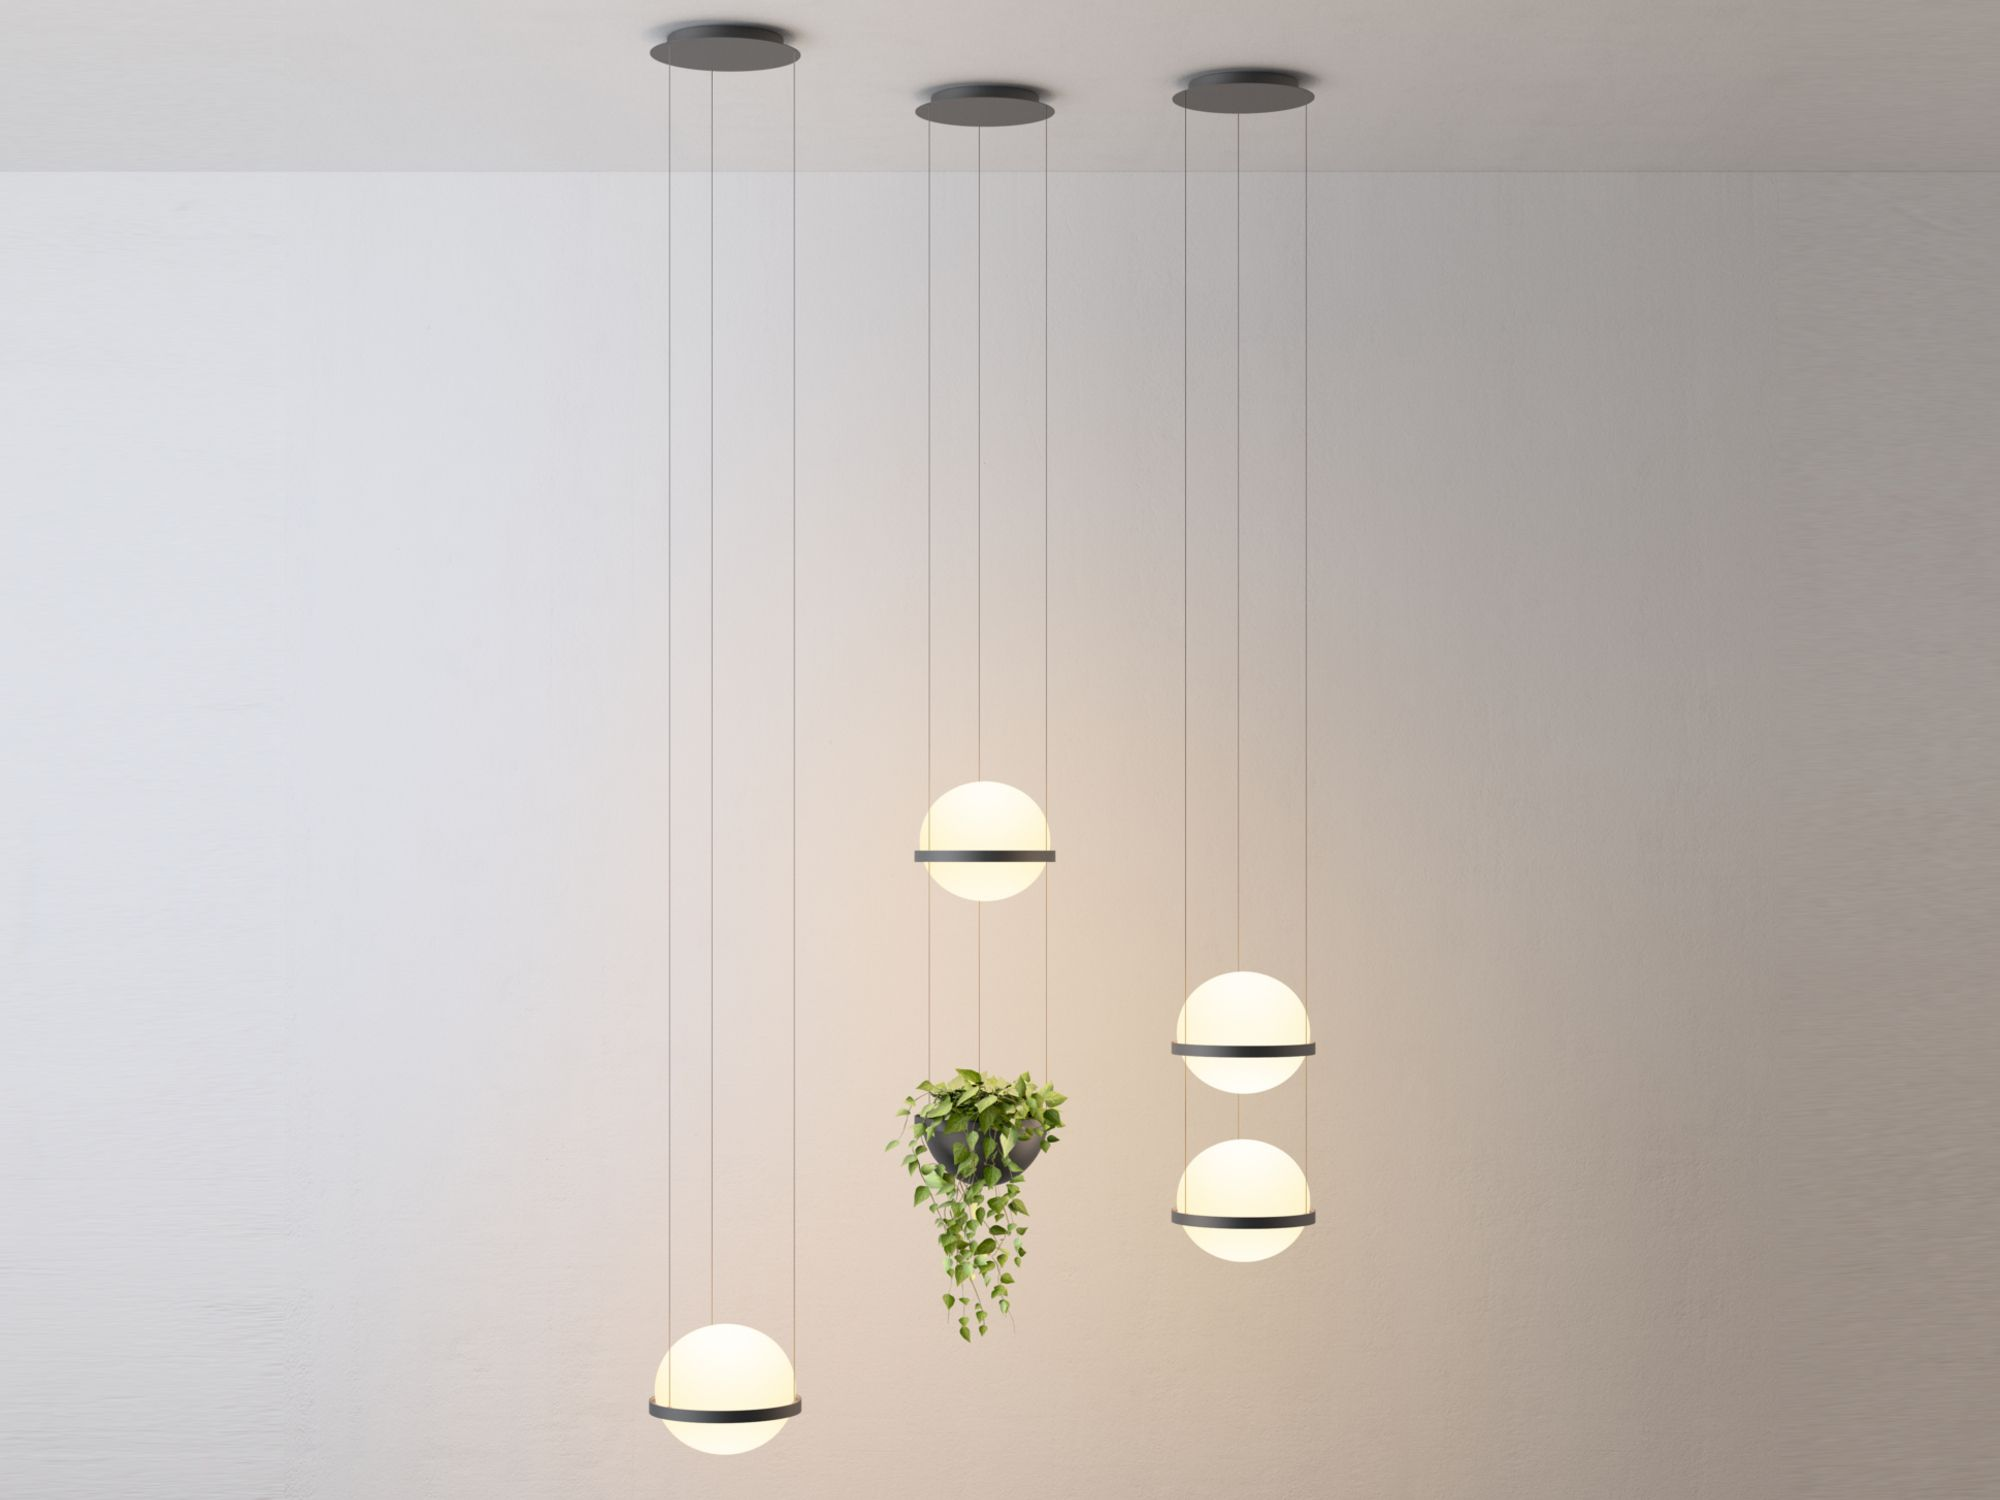 Pendant Lamps that Contribute to Positive Interiors